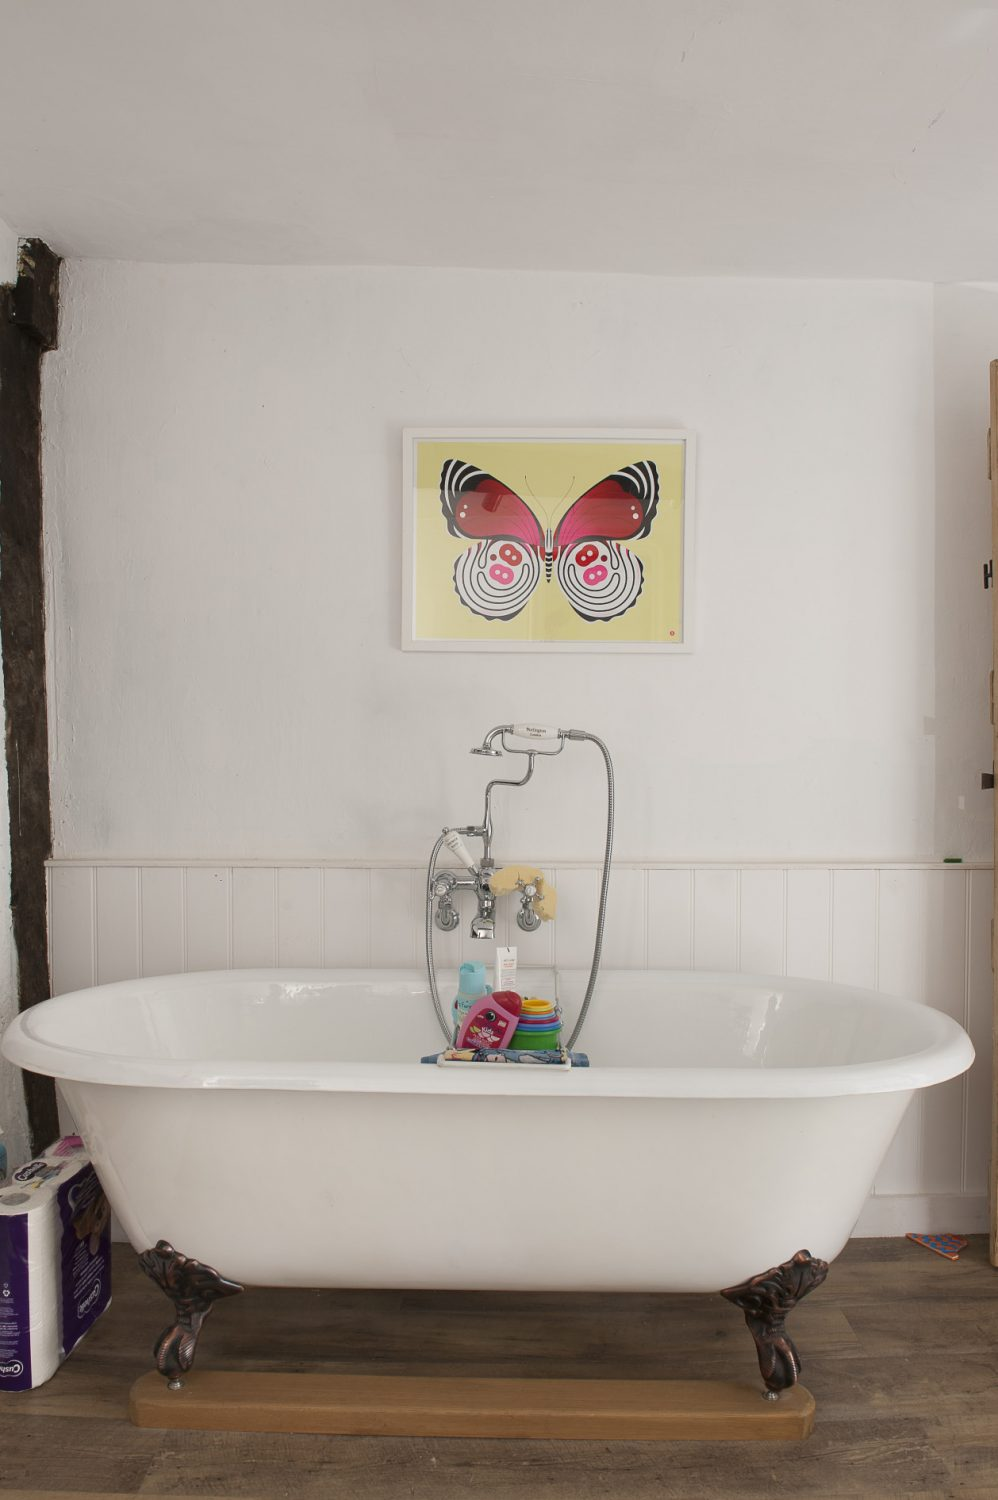 the butterfly print above the bath adds a playful and colourful touch to the otherwise pale interior